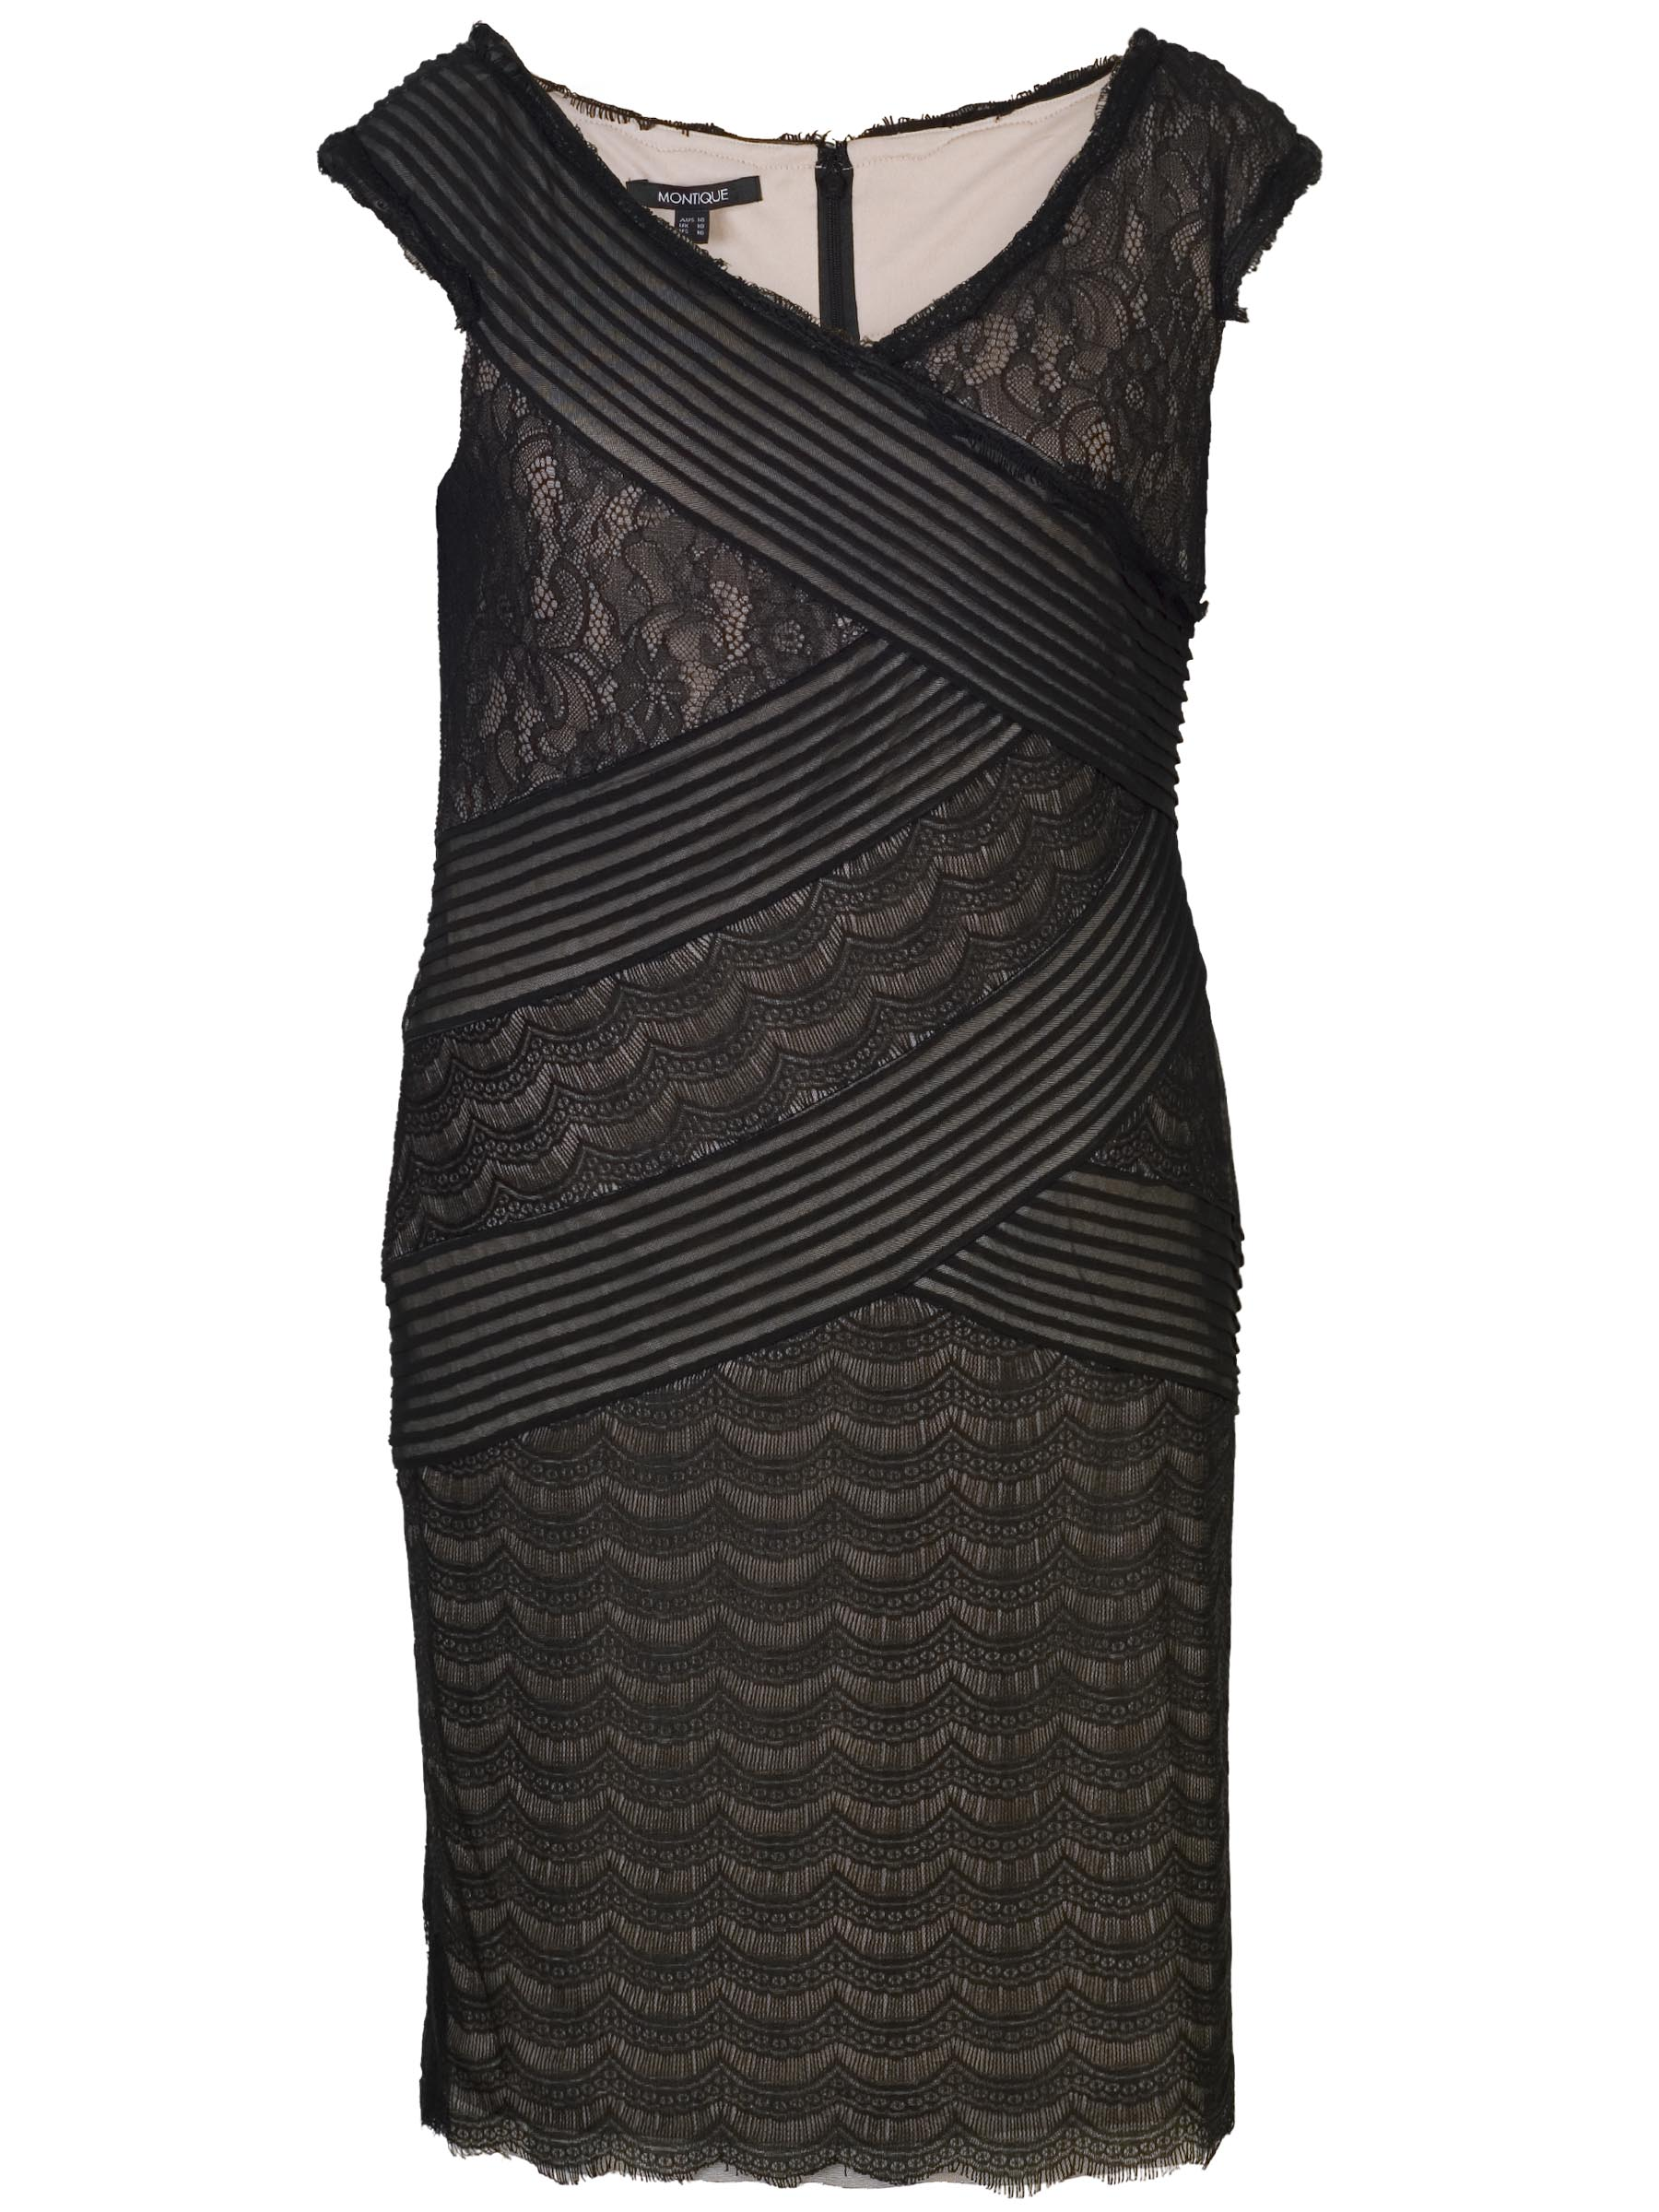 Black Lace Pleat Bandage Dress With Champagne Lining